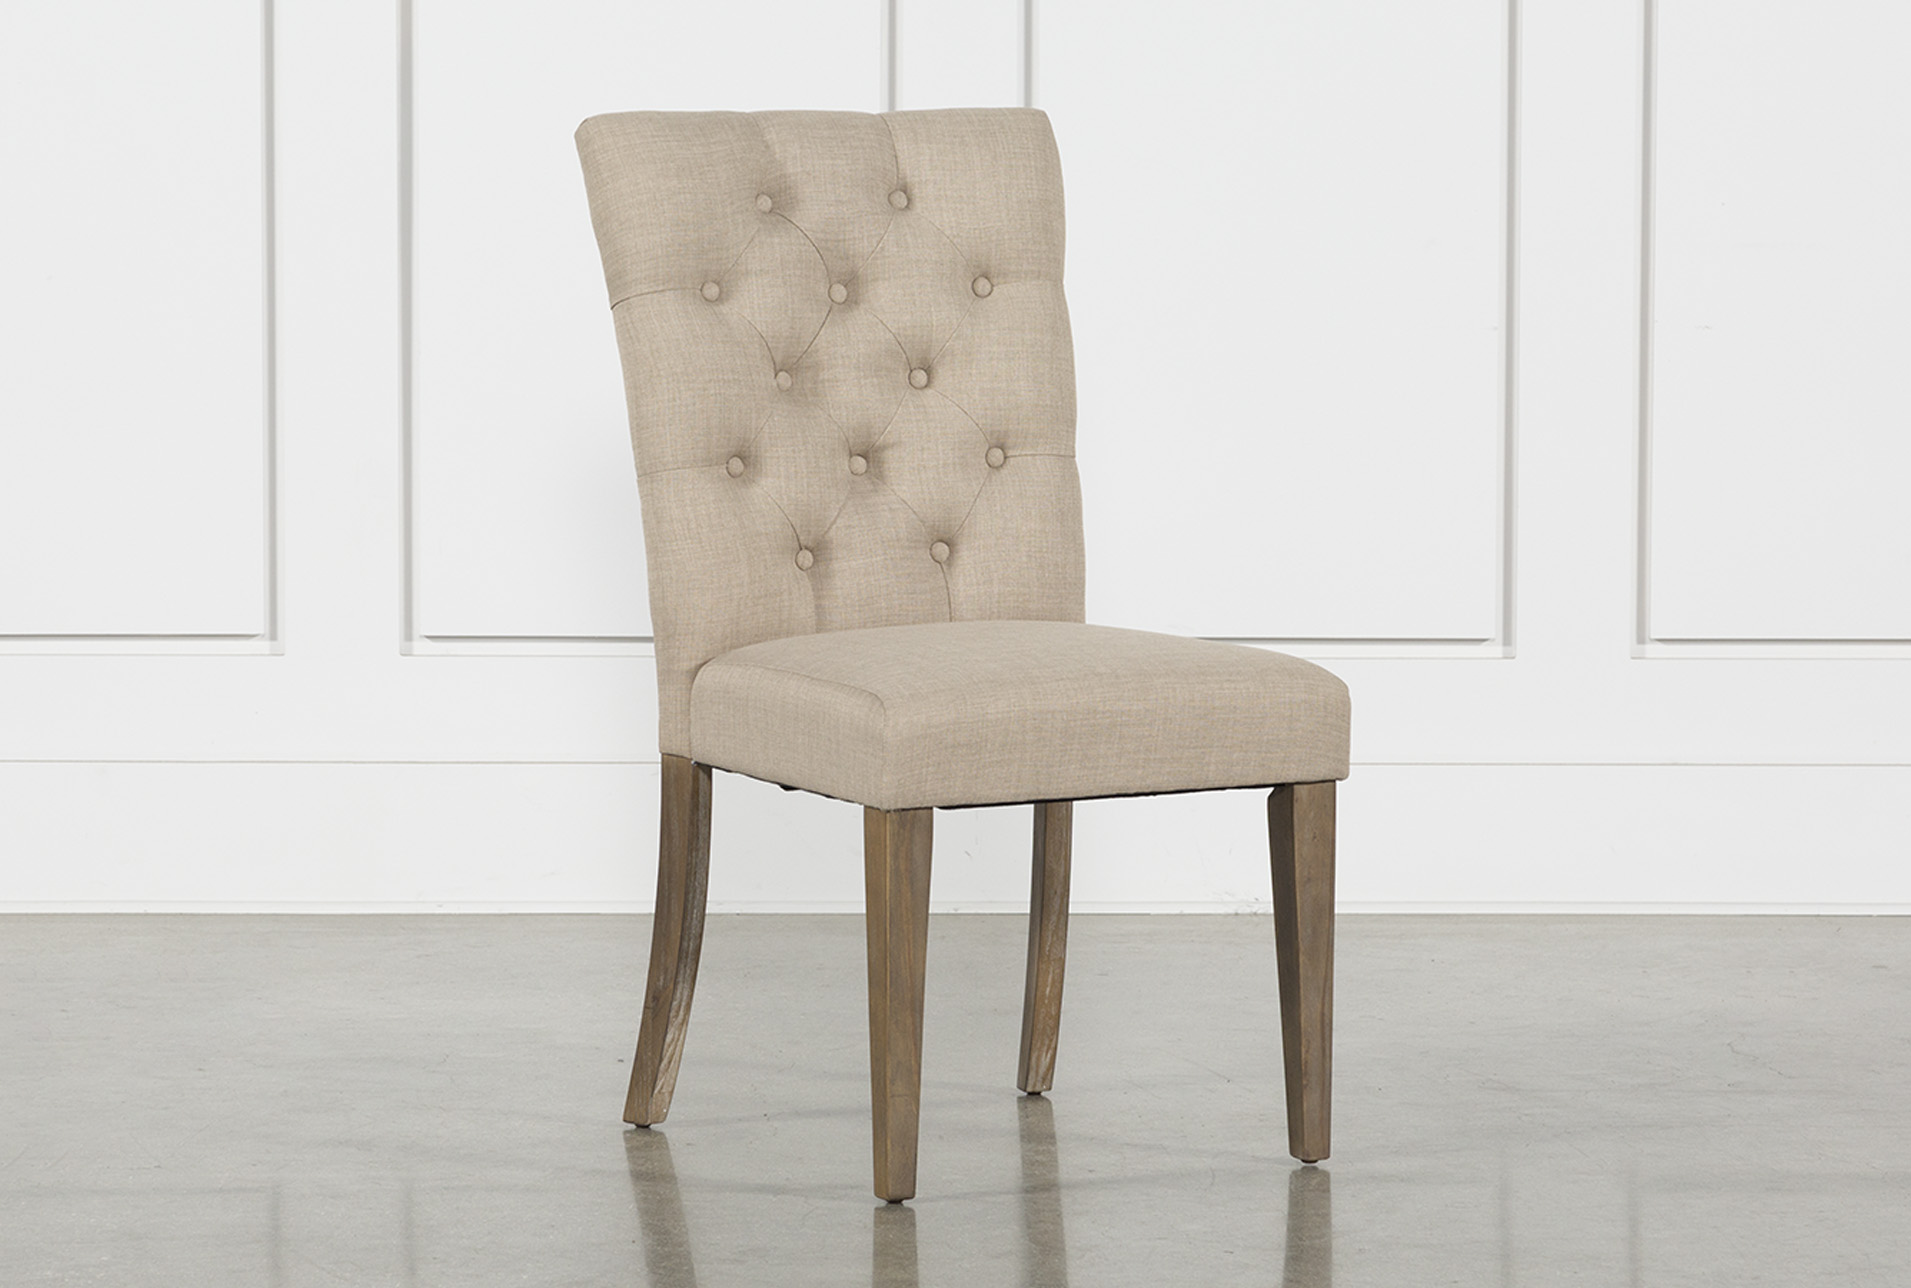 Charmant Parquet Dining Chair